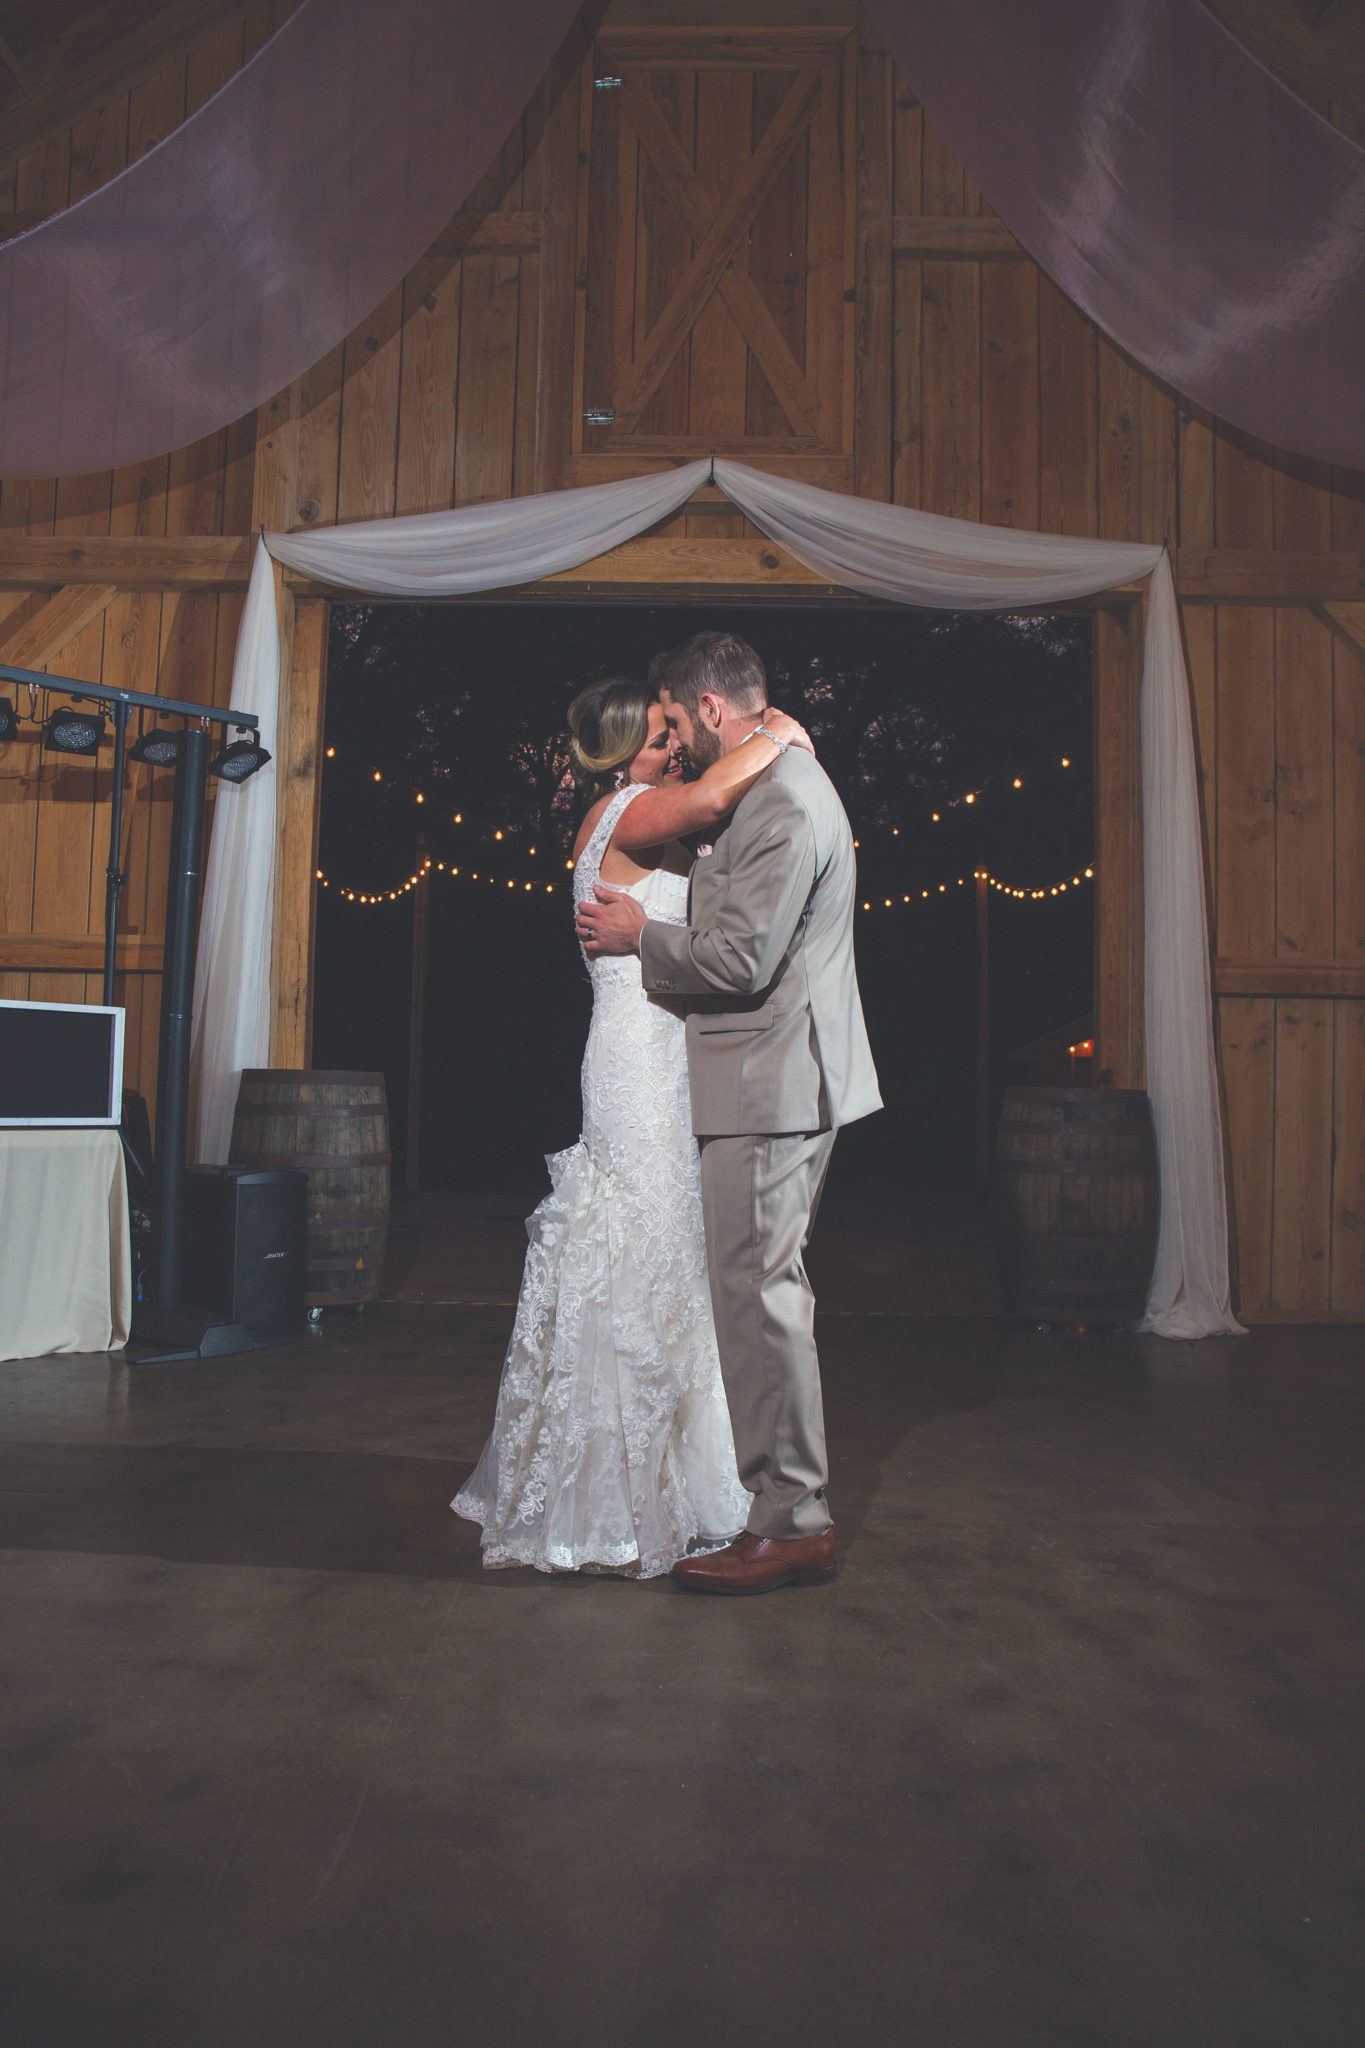 The newlyweds' first dance.